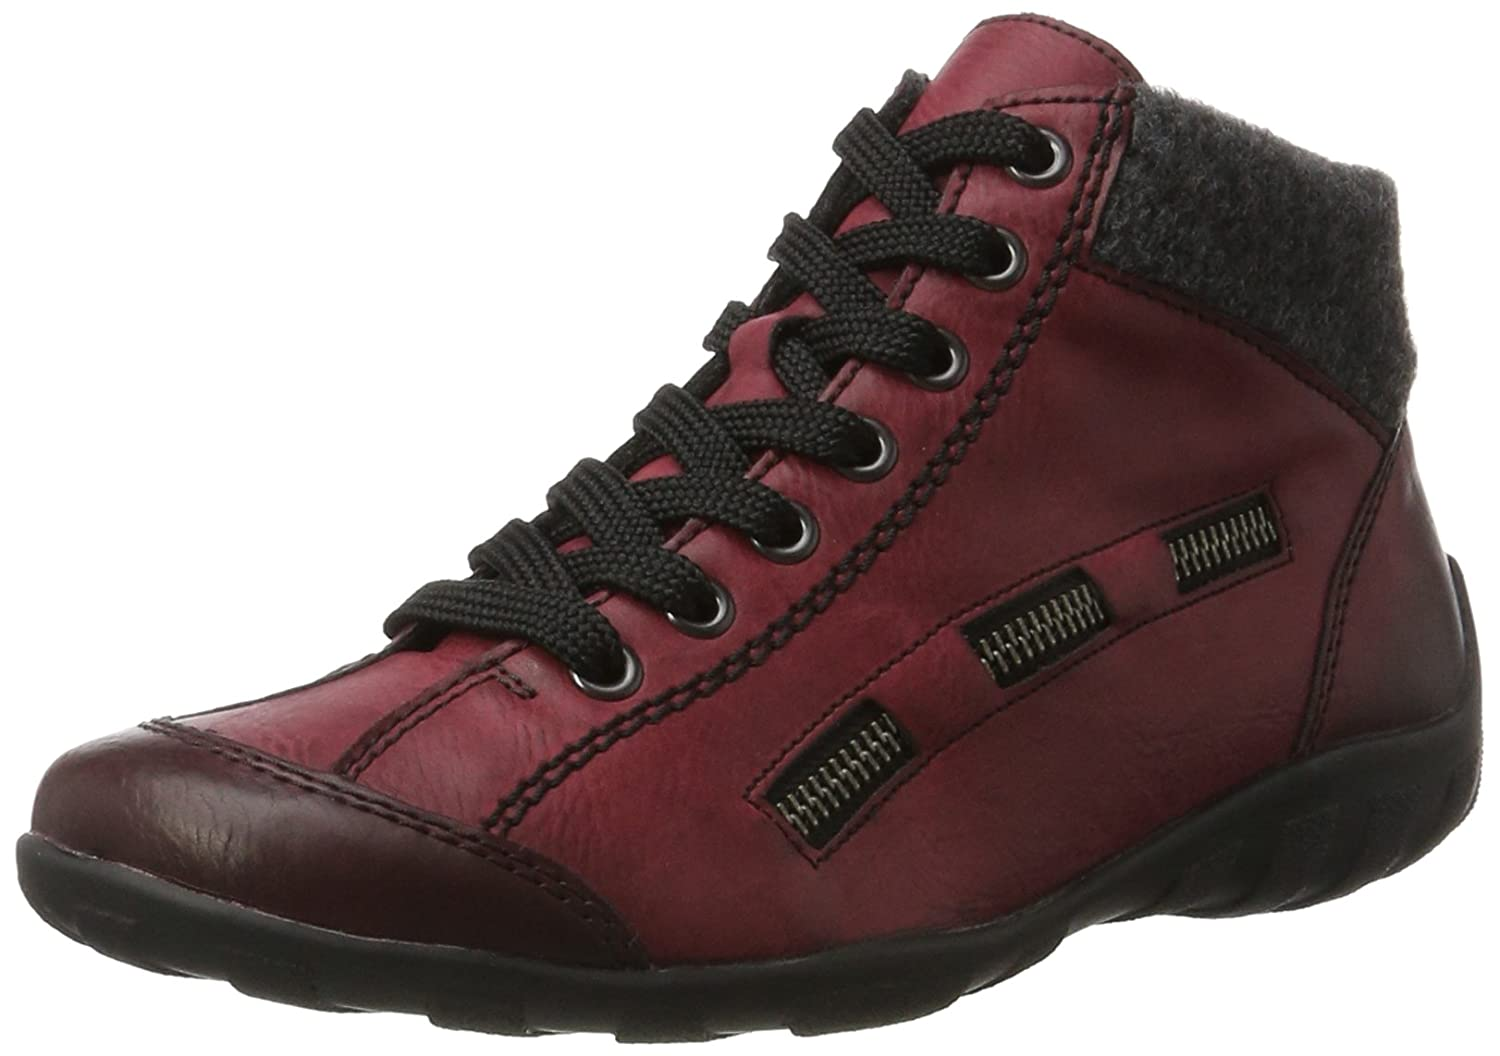 Rieker Damen (Wine/Anthrazit) L6543 Hohe Sneaker, Rot (Wine/Anthrazit) Damen 57f043